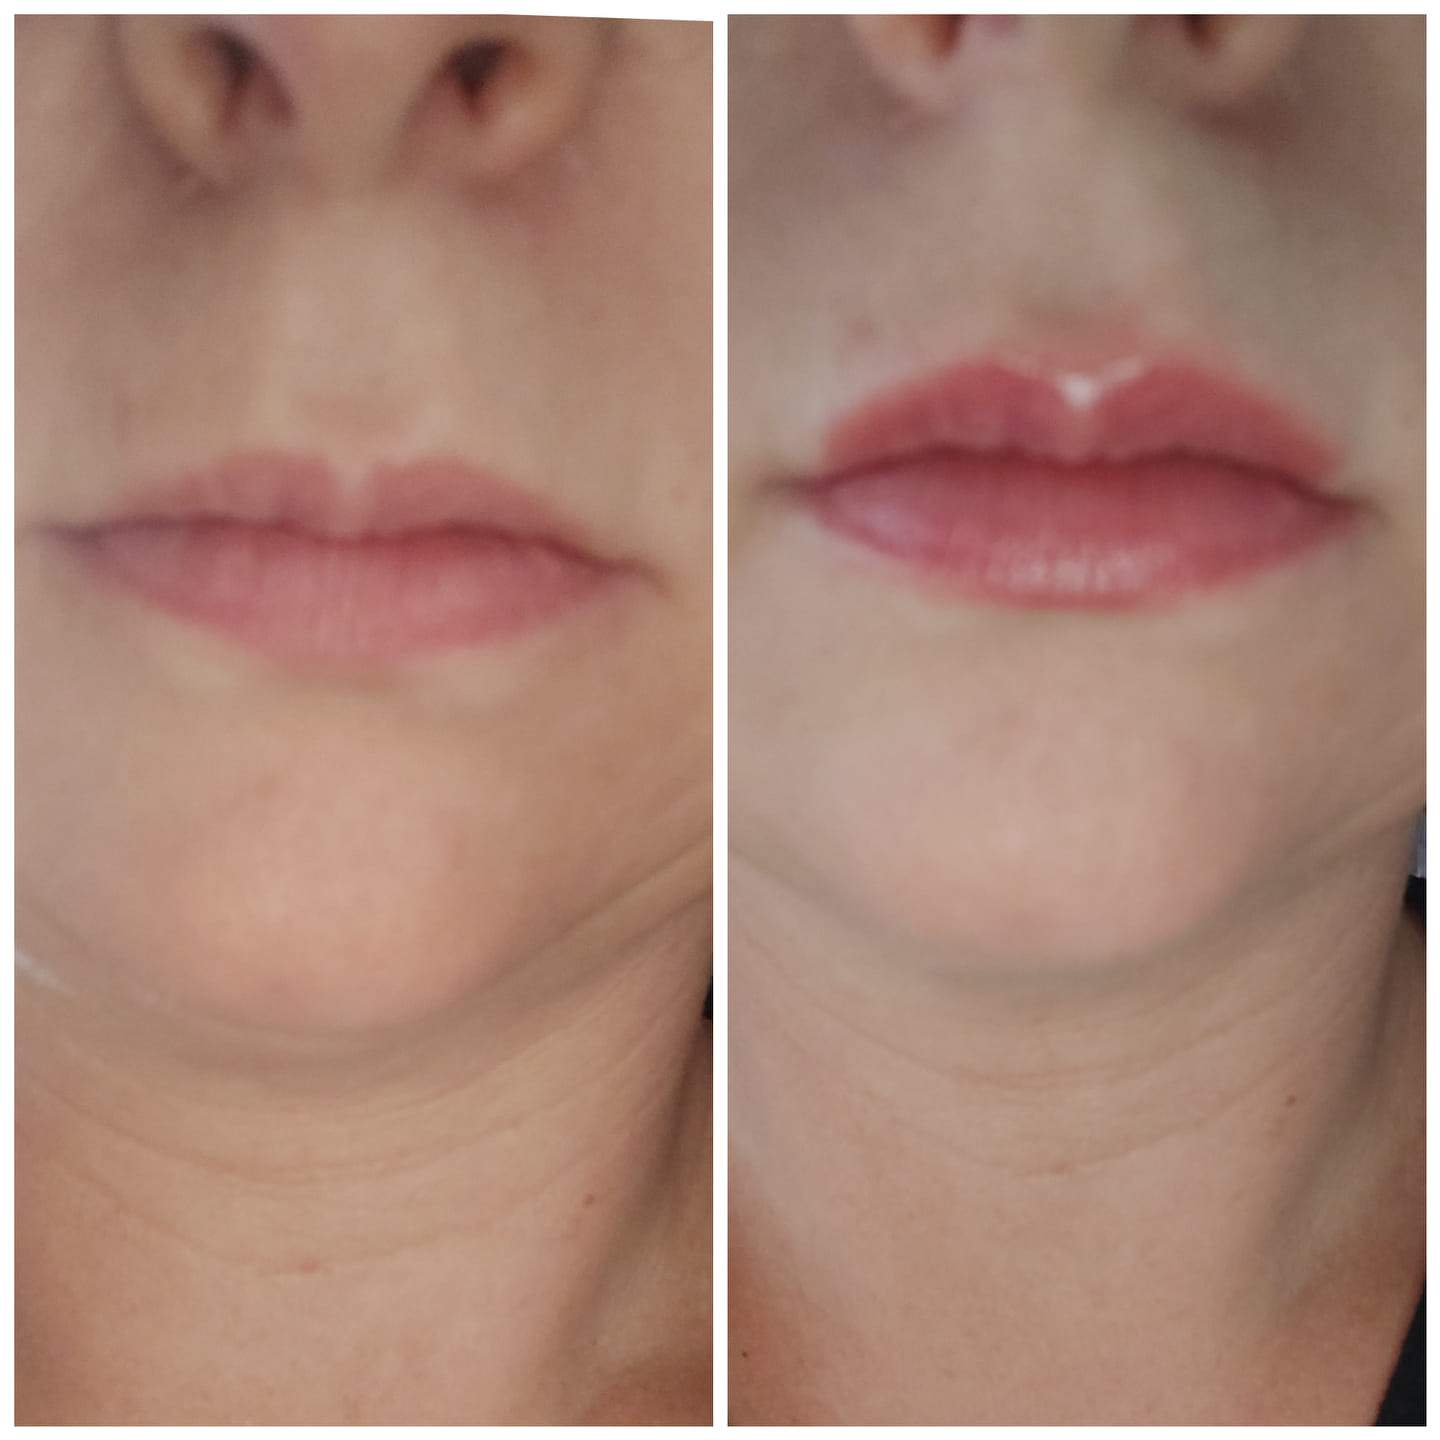 BUY ONE GET ONE FREE LIP PLUMPING SERUM (choose Instant OR Extreme formula)